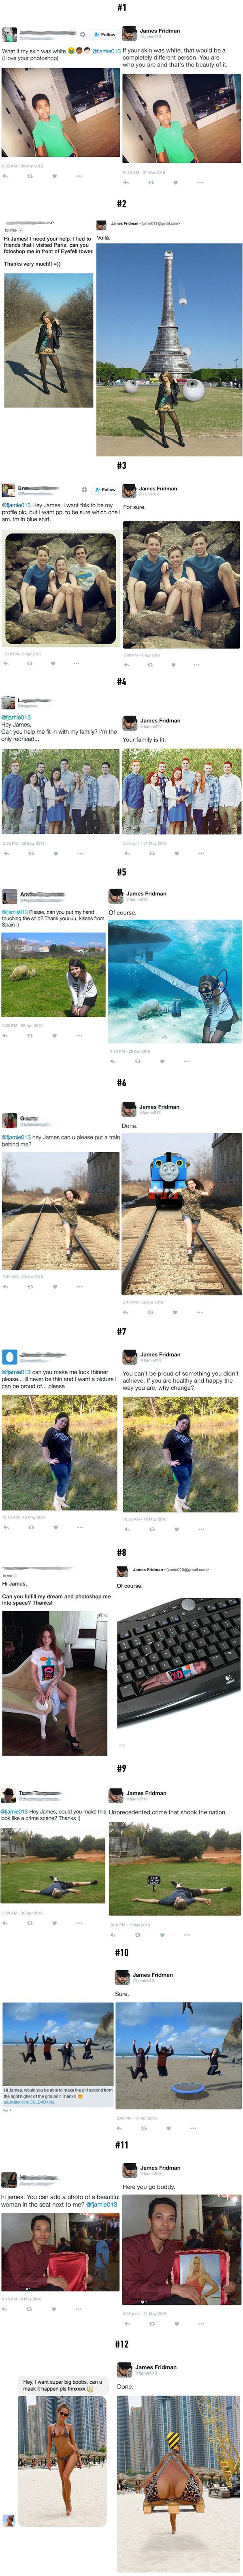 What Happens When You Ask The Wrong Guy For Help (By James Fridman)